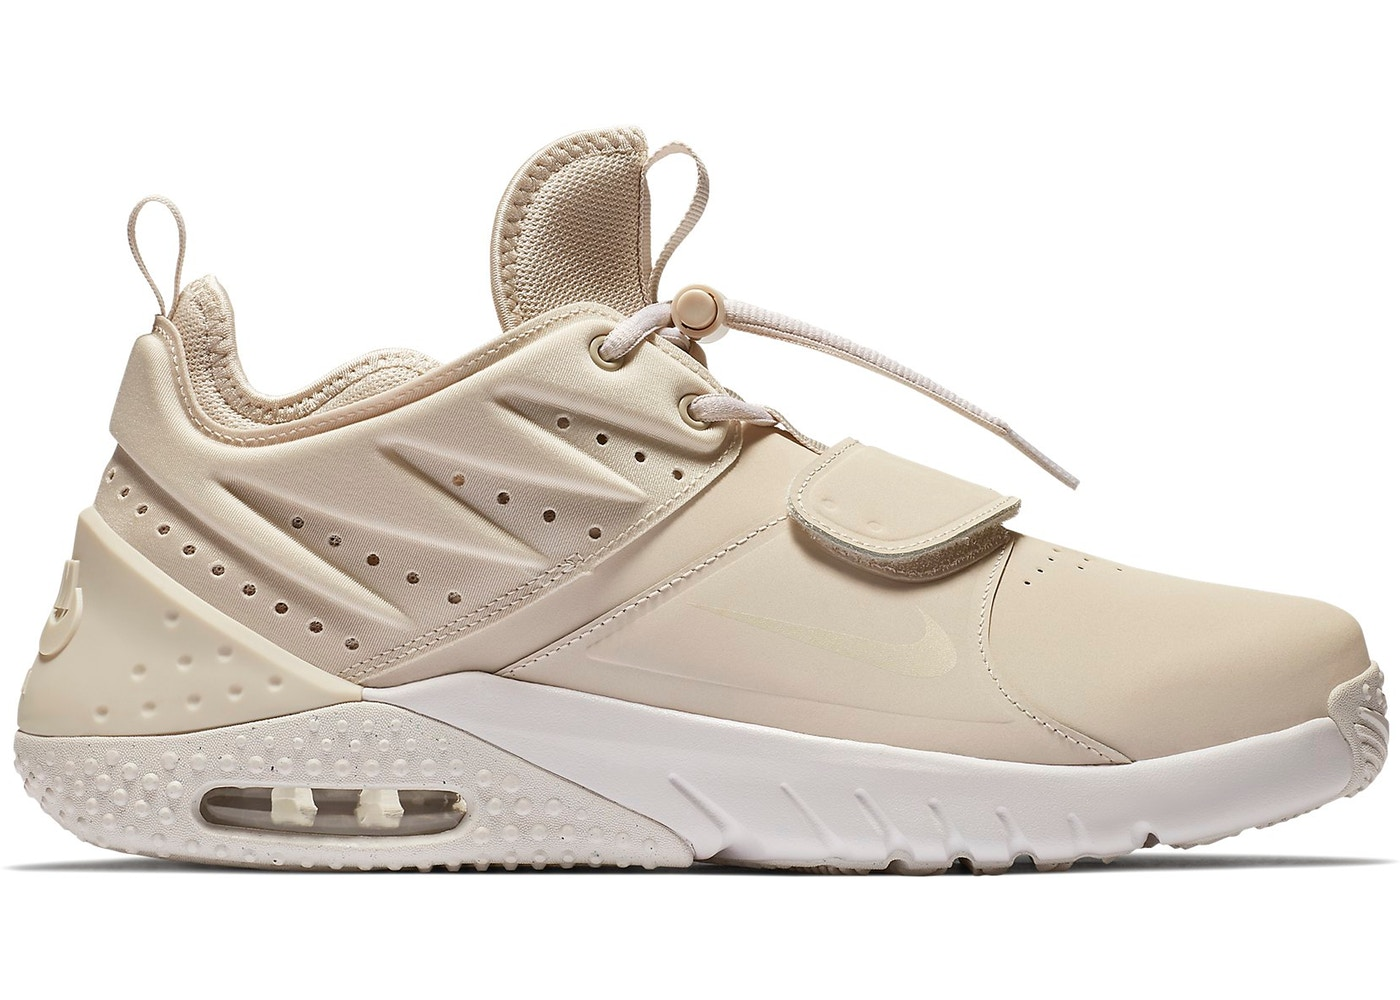 Nike Air Max Trainer 1 Leather Desert Sand